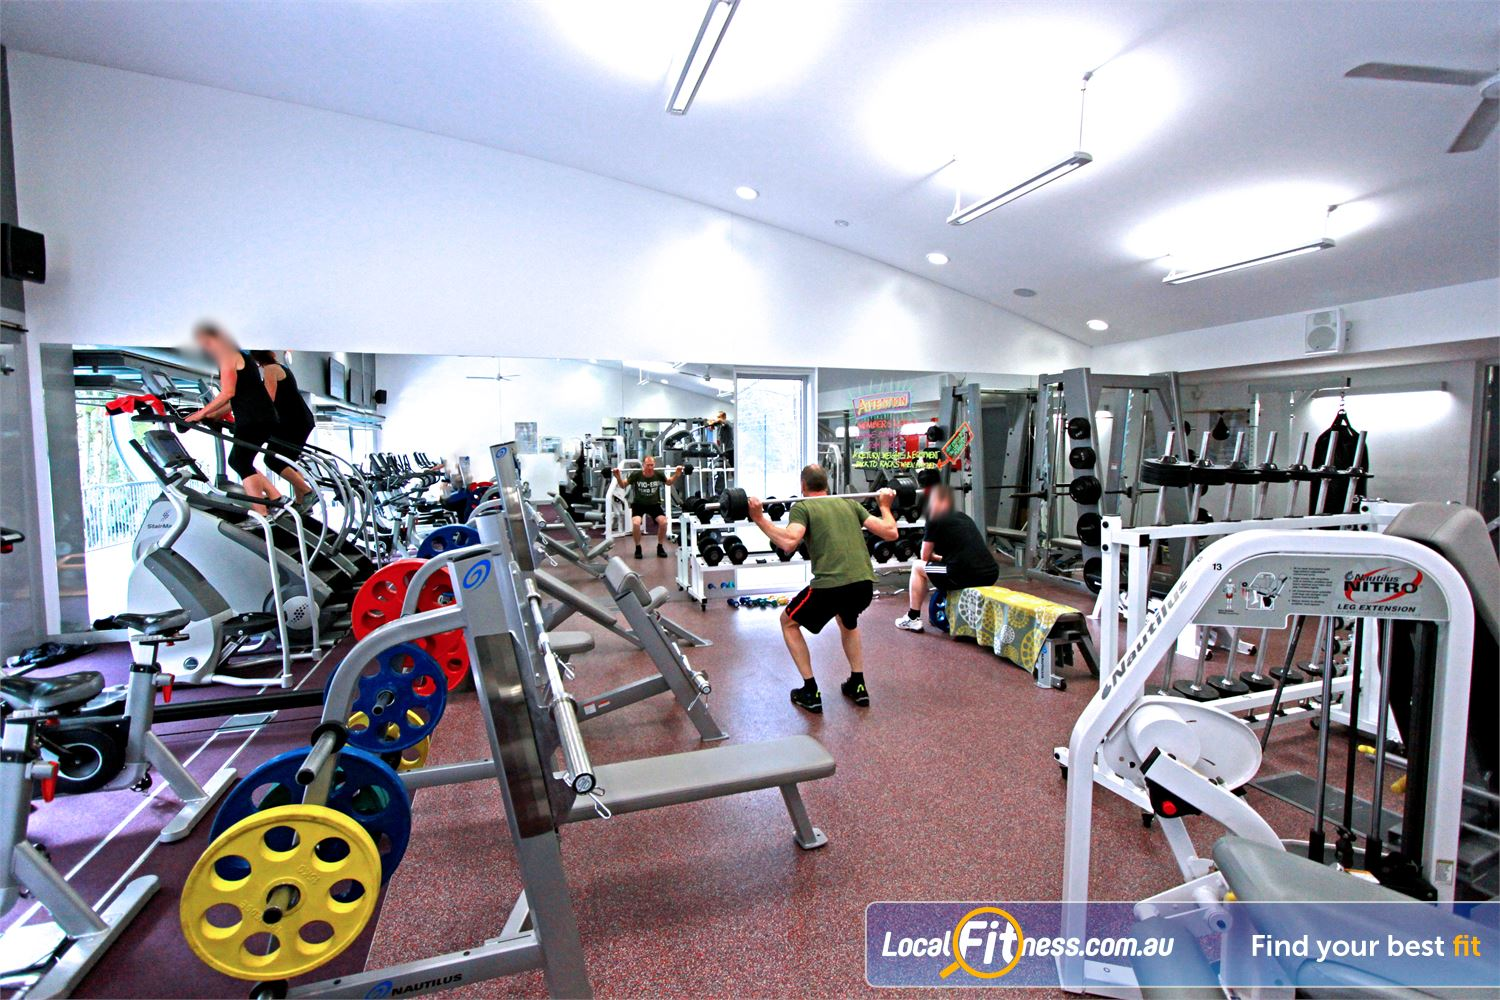 Monbulk Aquatic Centre Near Mount Evelyn Heavy duty benches for your free-weights training.